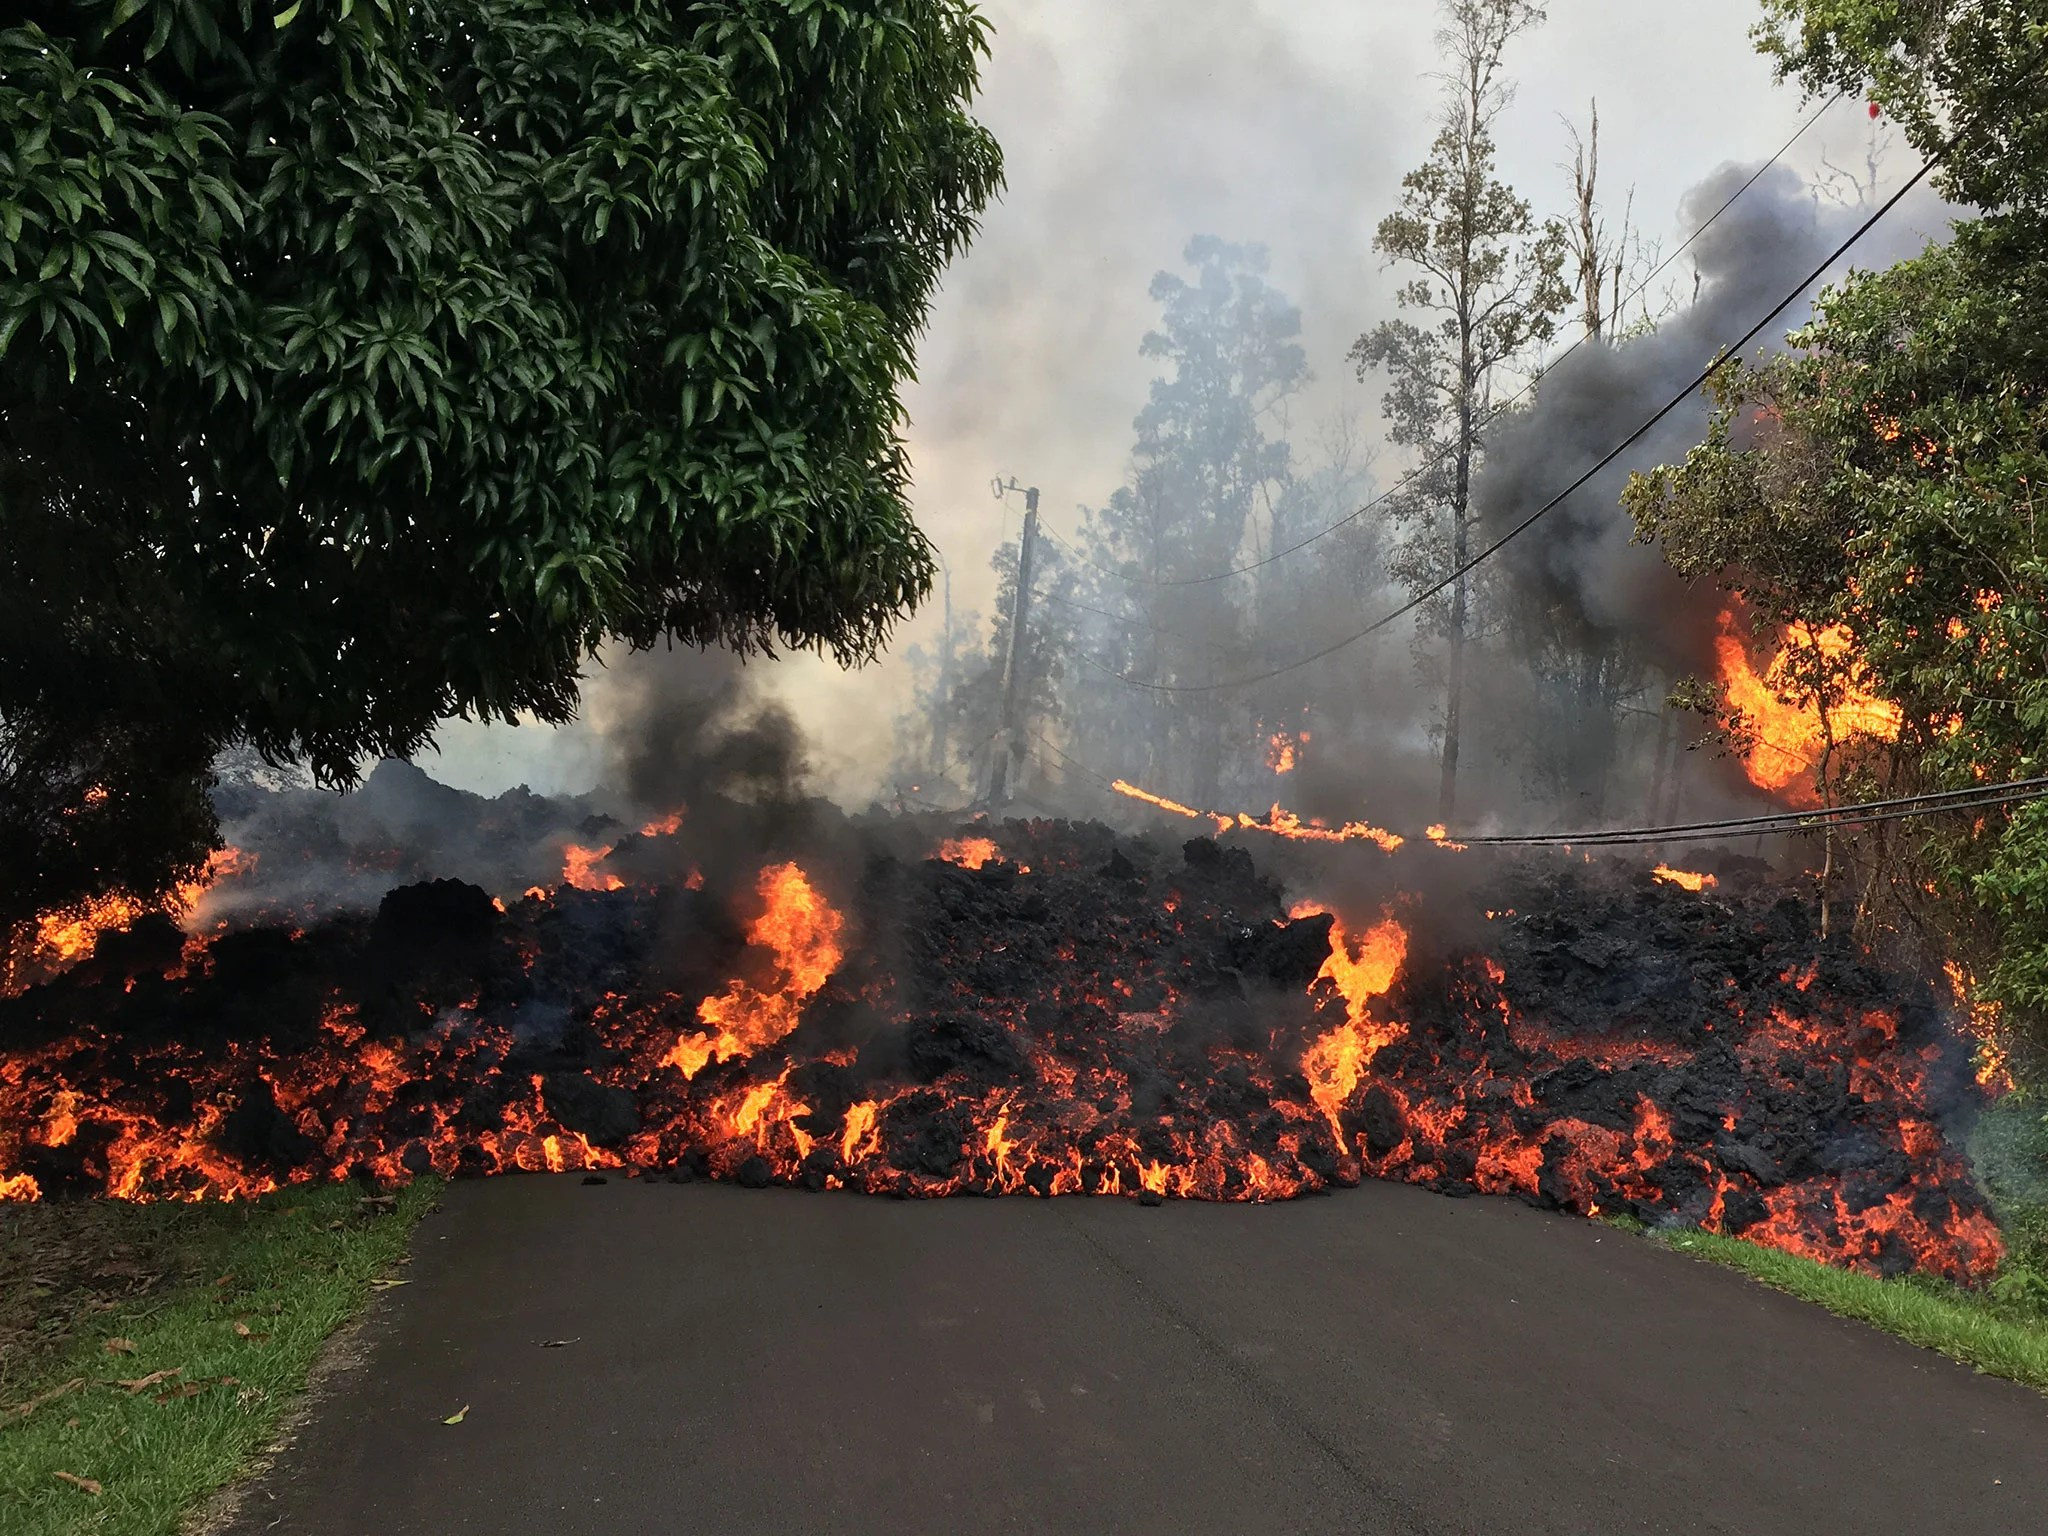 Hawaii Volcano Rush To Move Tens Of Thousands Of Gallons Of Flammable Chemicals From Lava Path